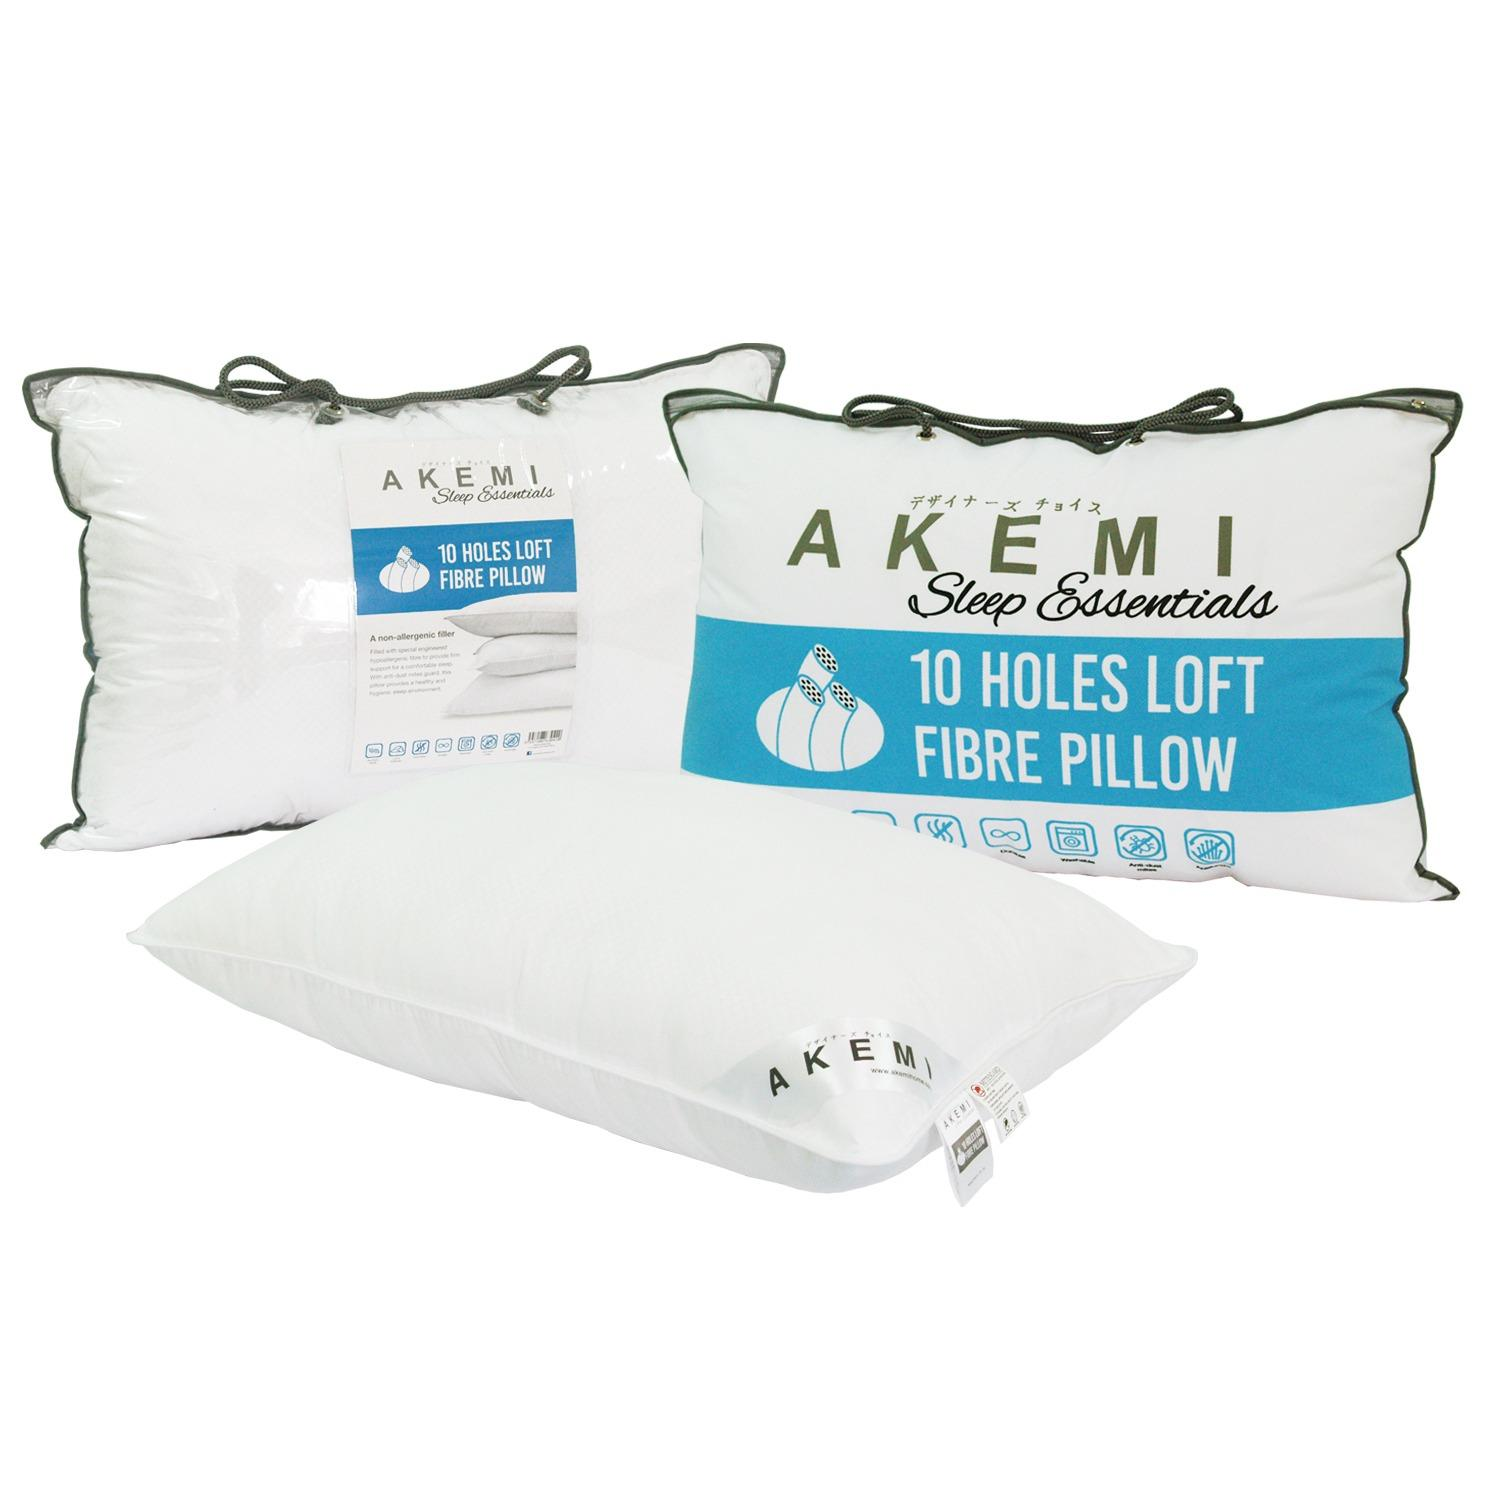 Cheap Akemi Sleep Essentials 10 Holes Loft Fibre Pillow Bundle Of 2